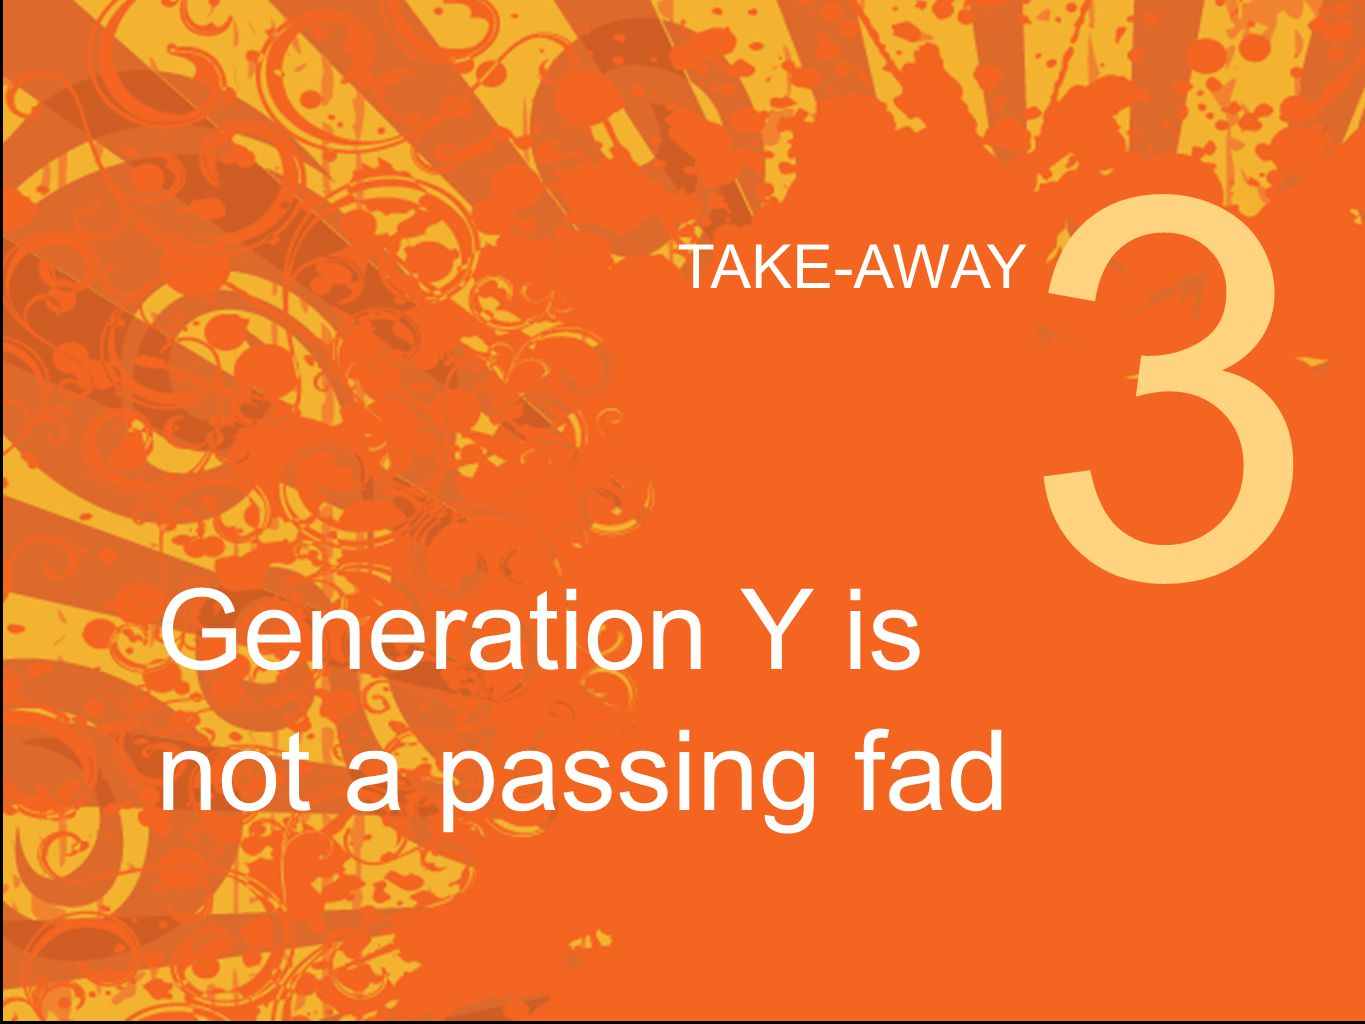 Generation Y is not a passing fad 3 TAKE-AWAY